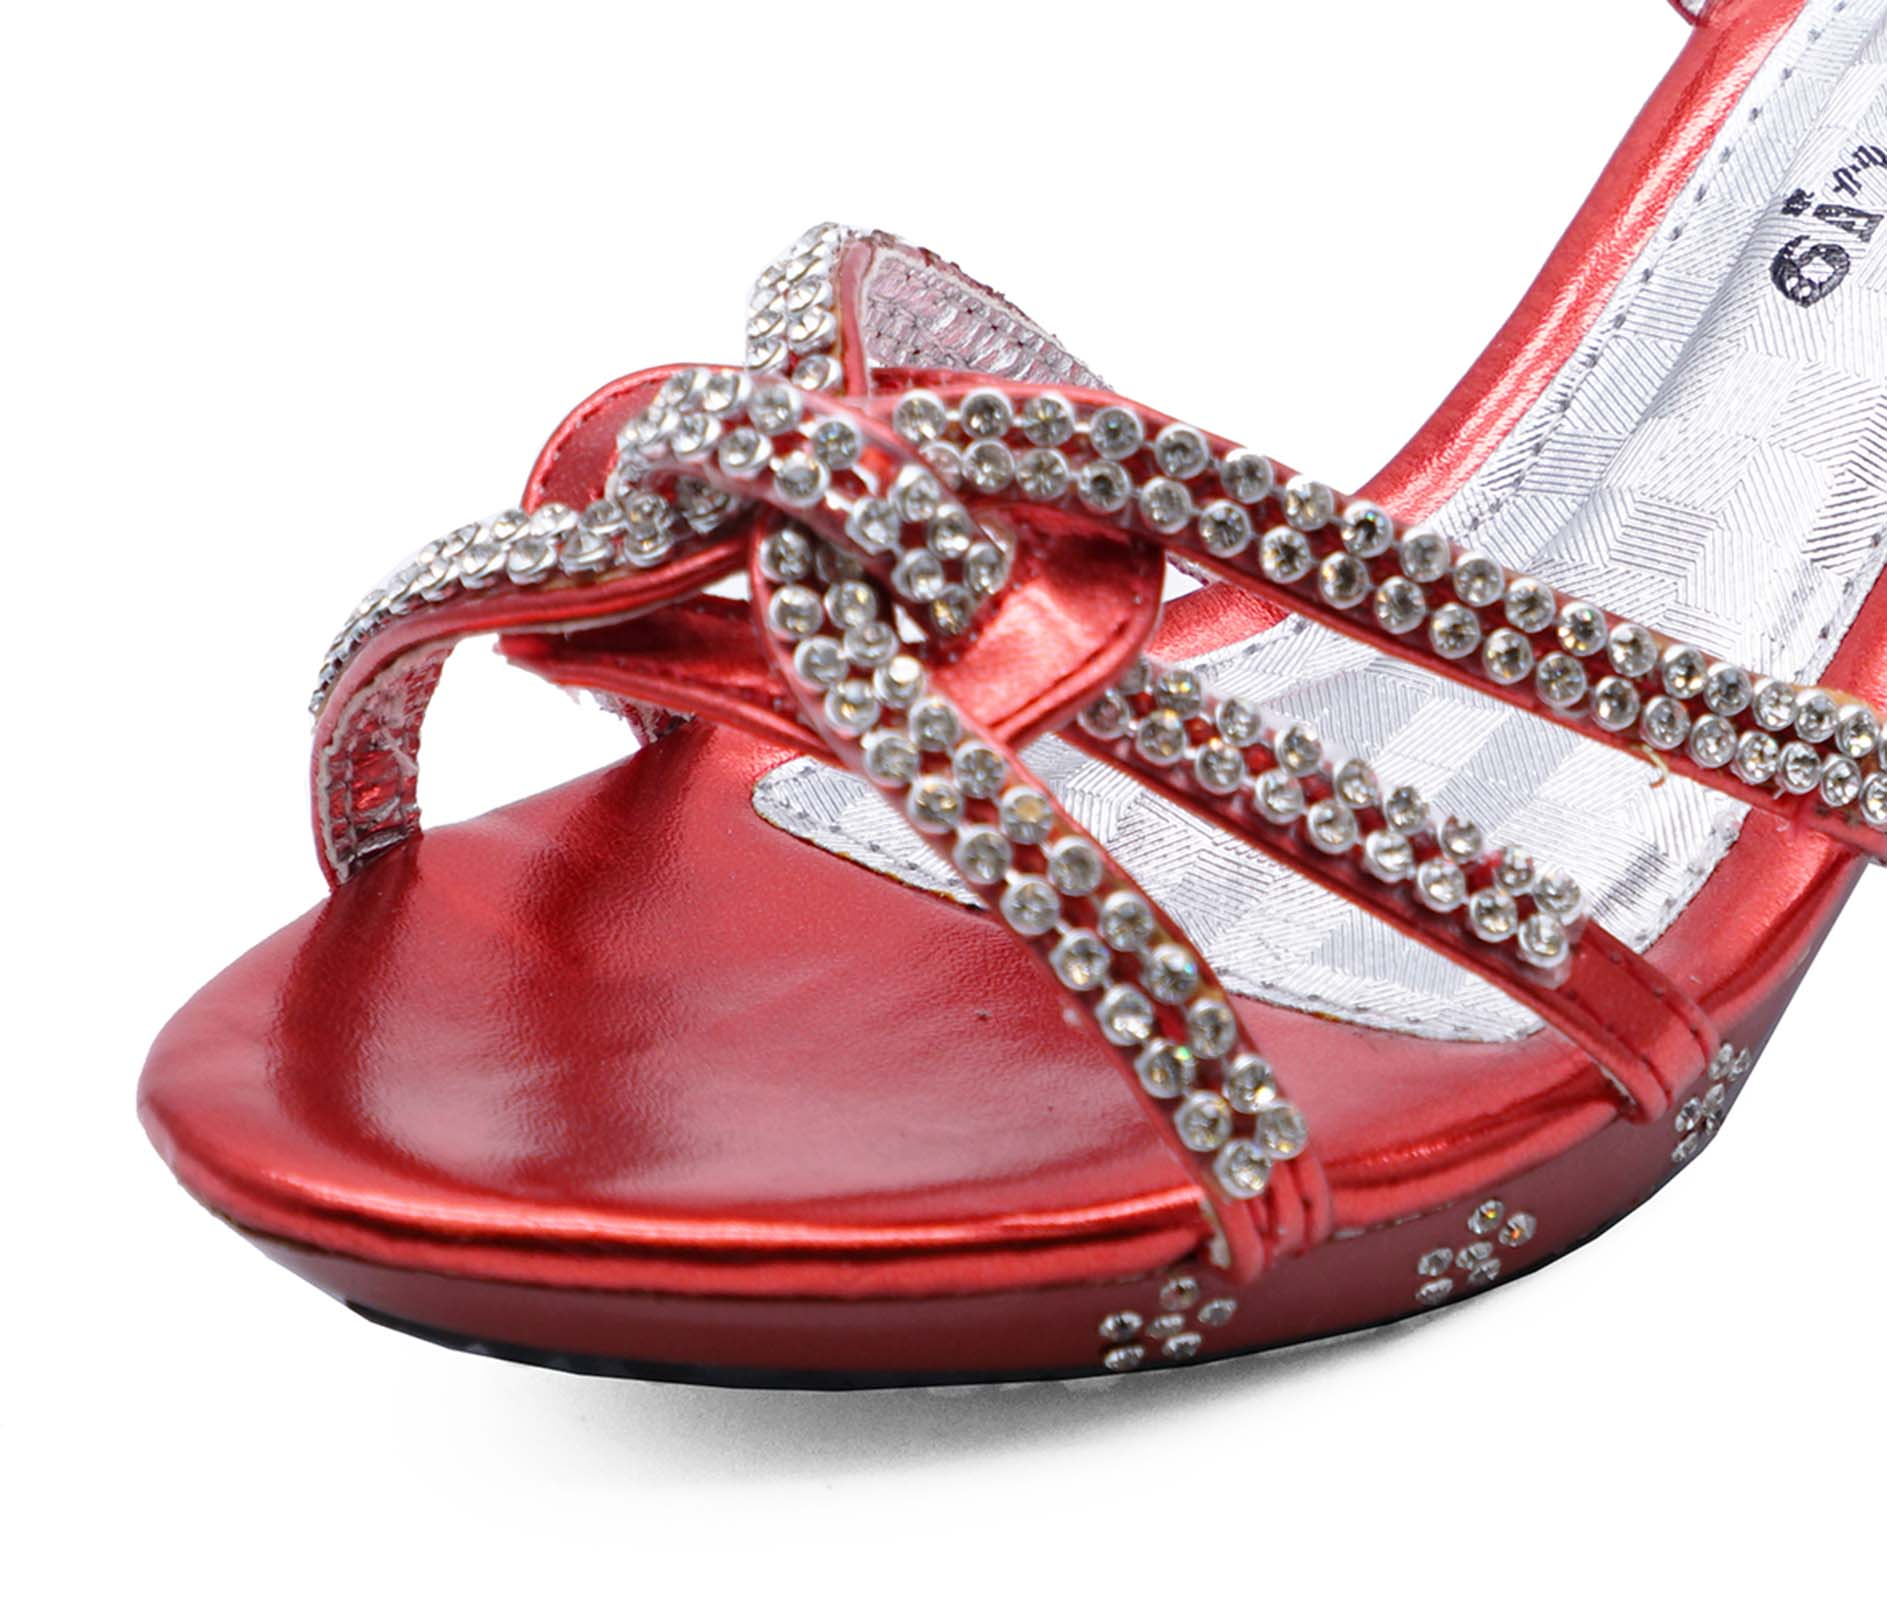 647d16ccdf92 Sentinel GIRLS CHILDRENS RED DRESS-UP DIAMANTE LOW-HEEL SANDALS PARTY SHOES  SIZES 10-